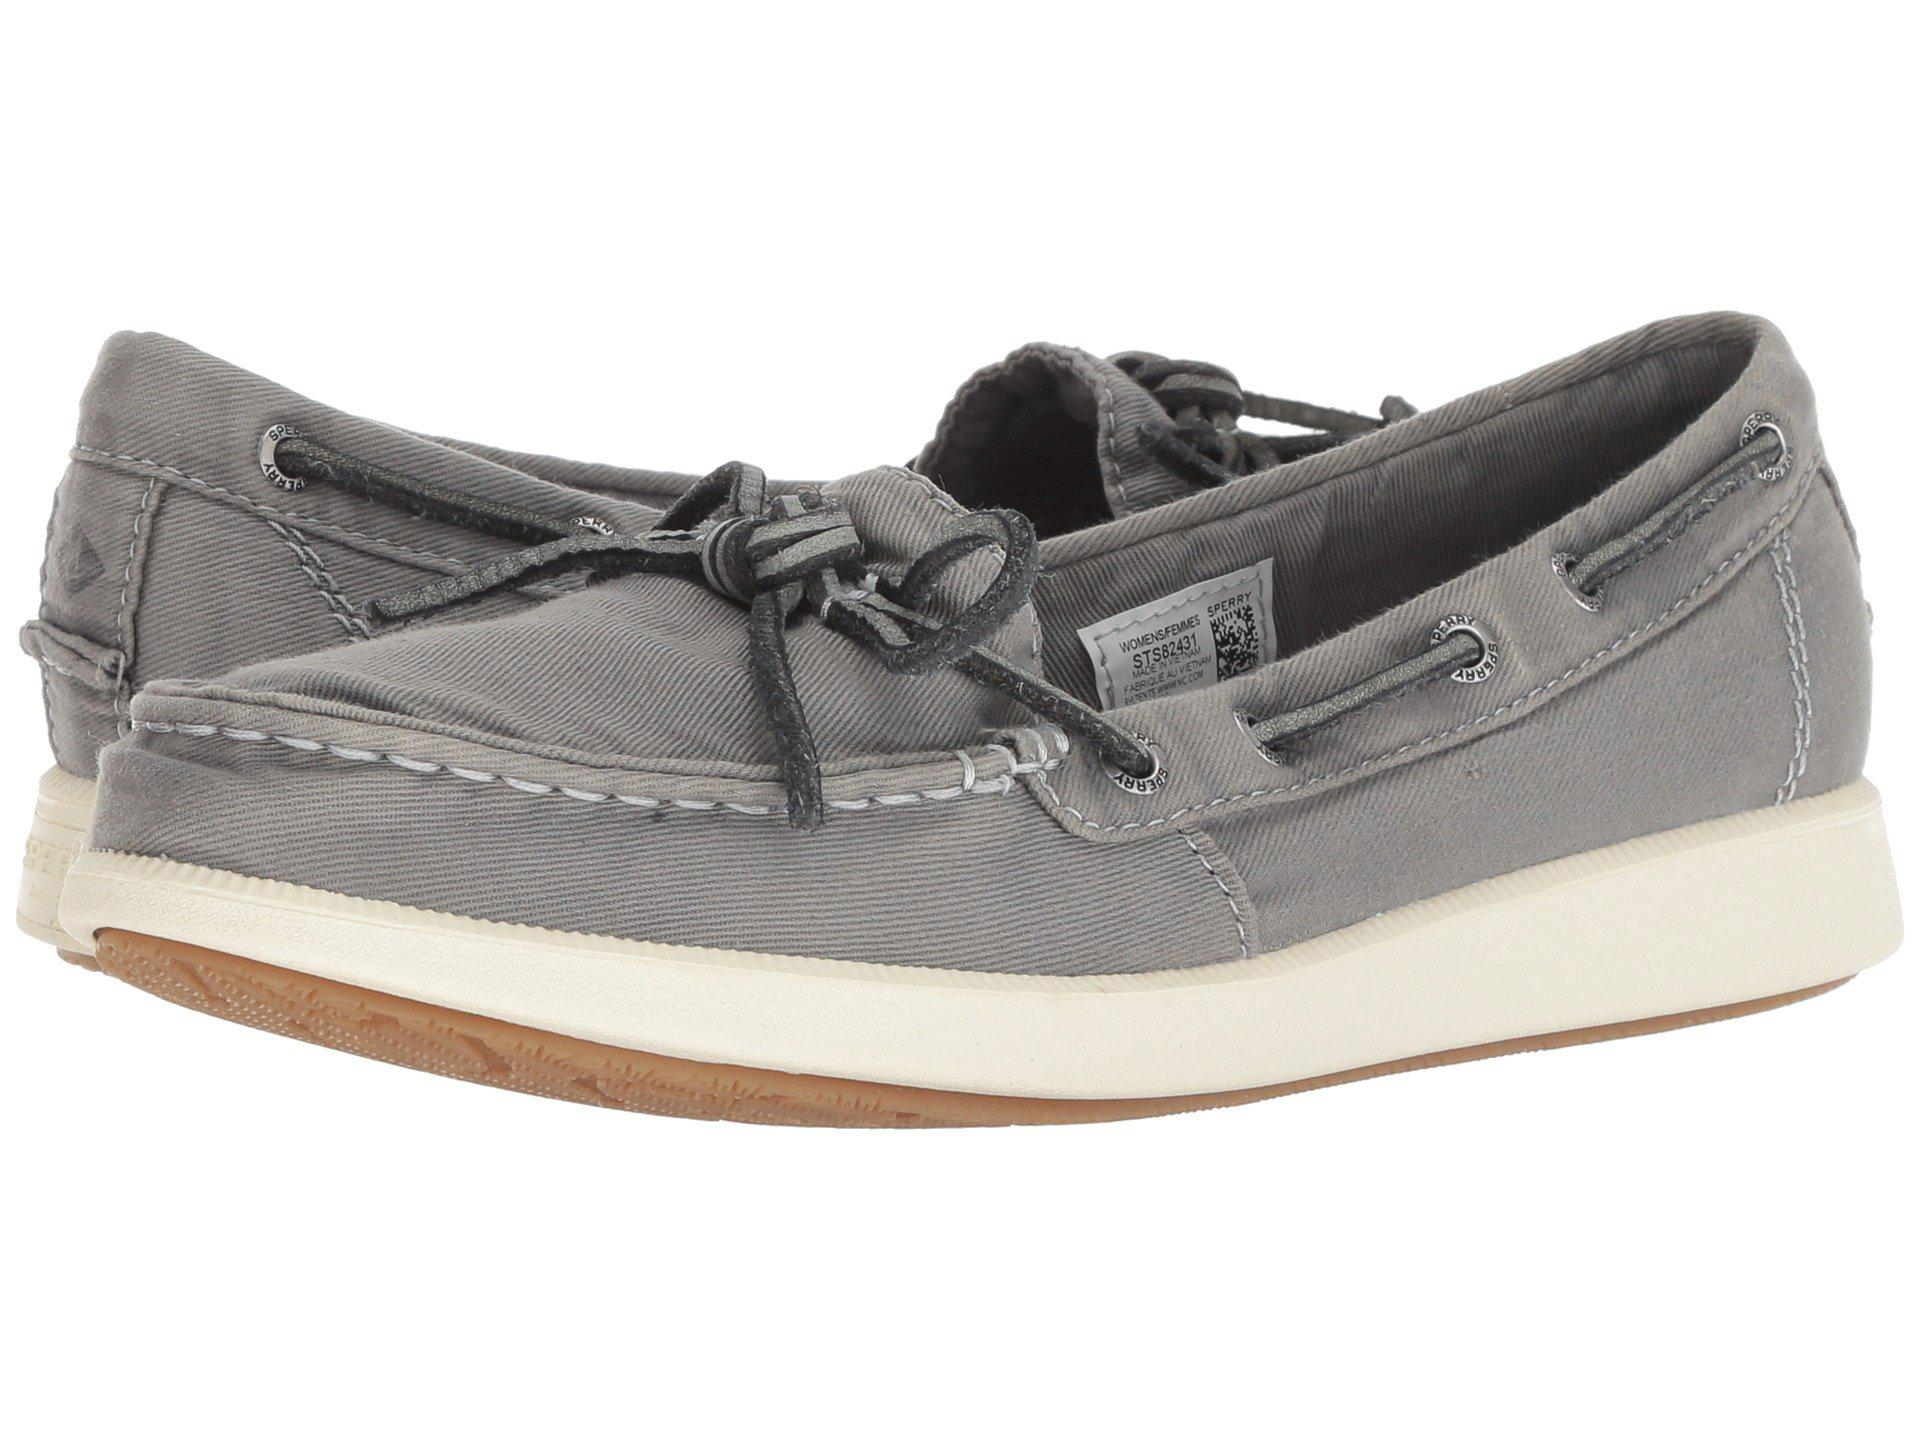 Lyst - Sperry Top-Sider Oasis Canal Canvas (ivory) Women s Slip On ... f33114a5d